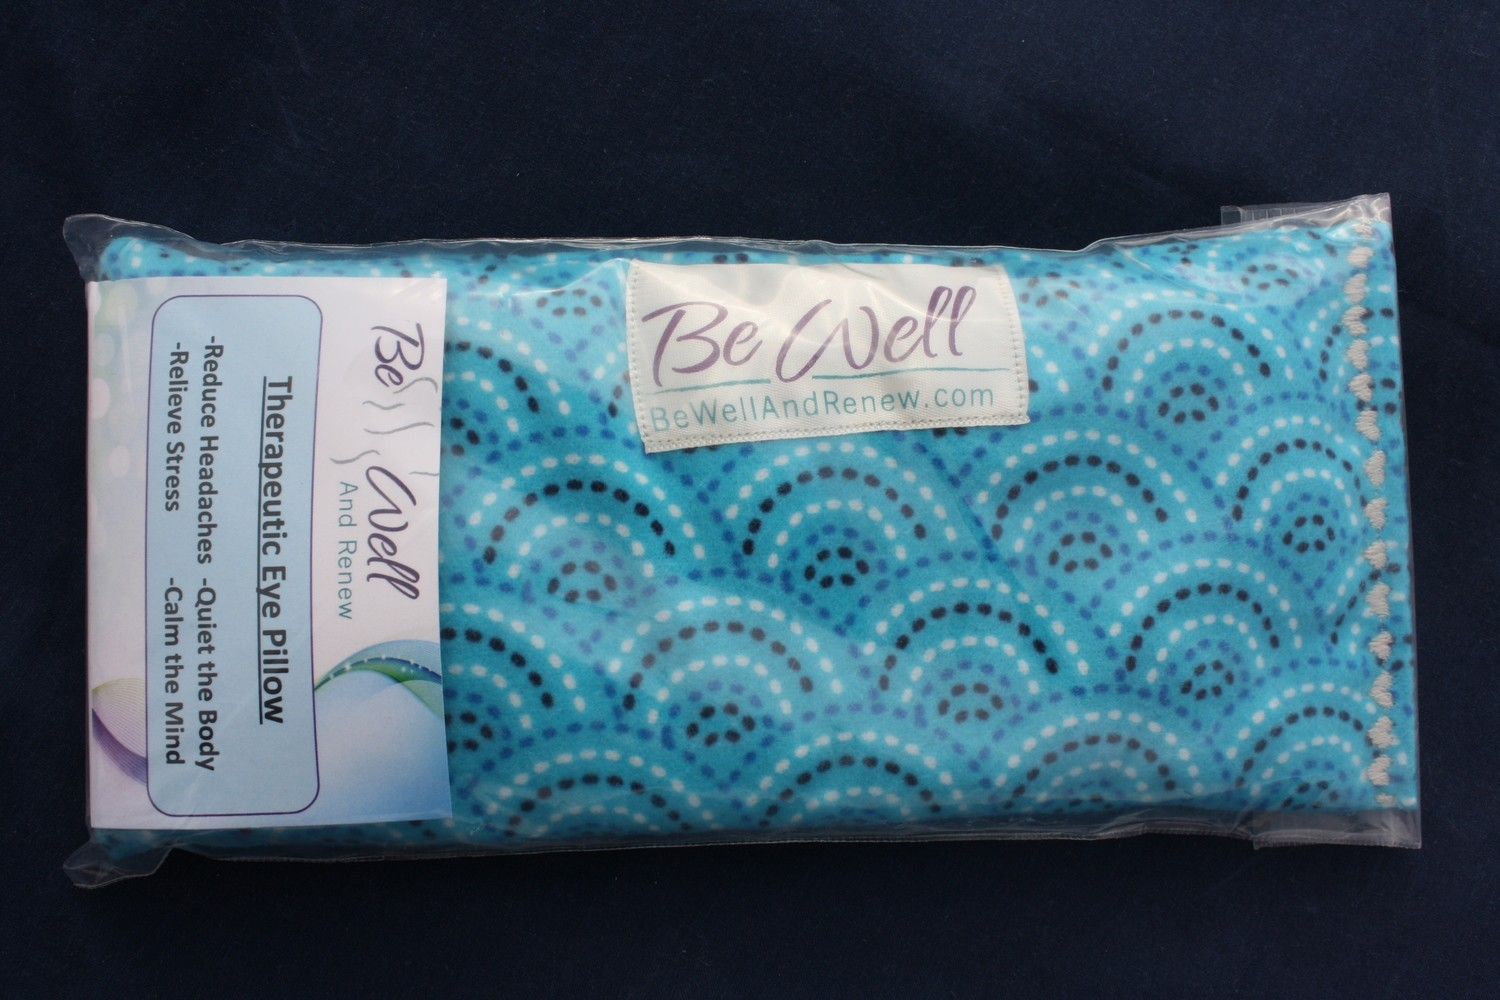 Buy 3, Get 4 Unscented Relaxation Eye Pillows (Get 1 FREE)